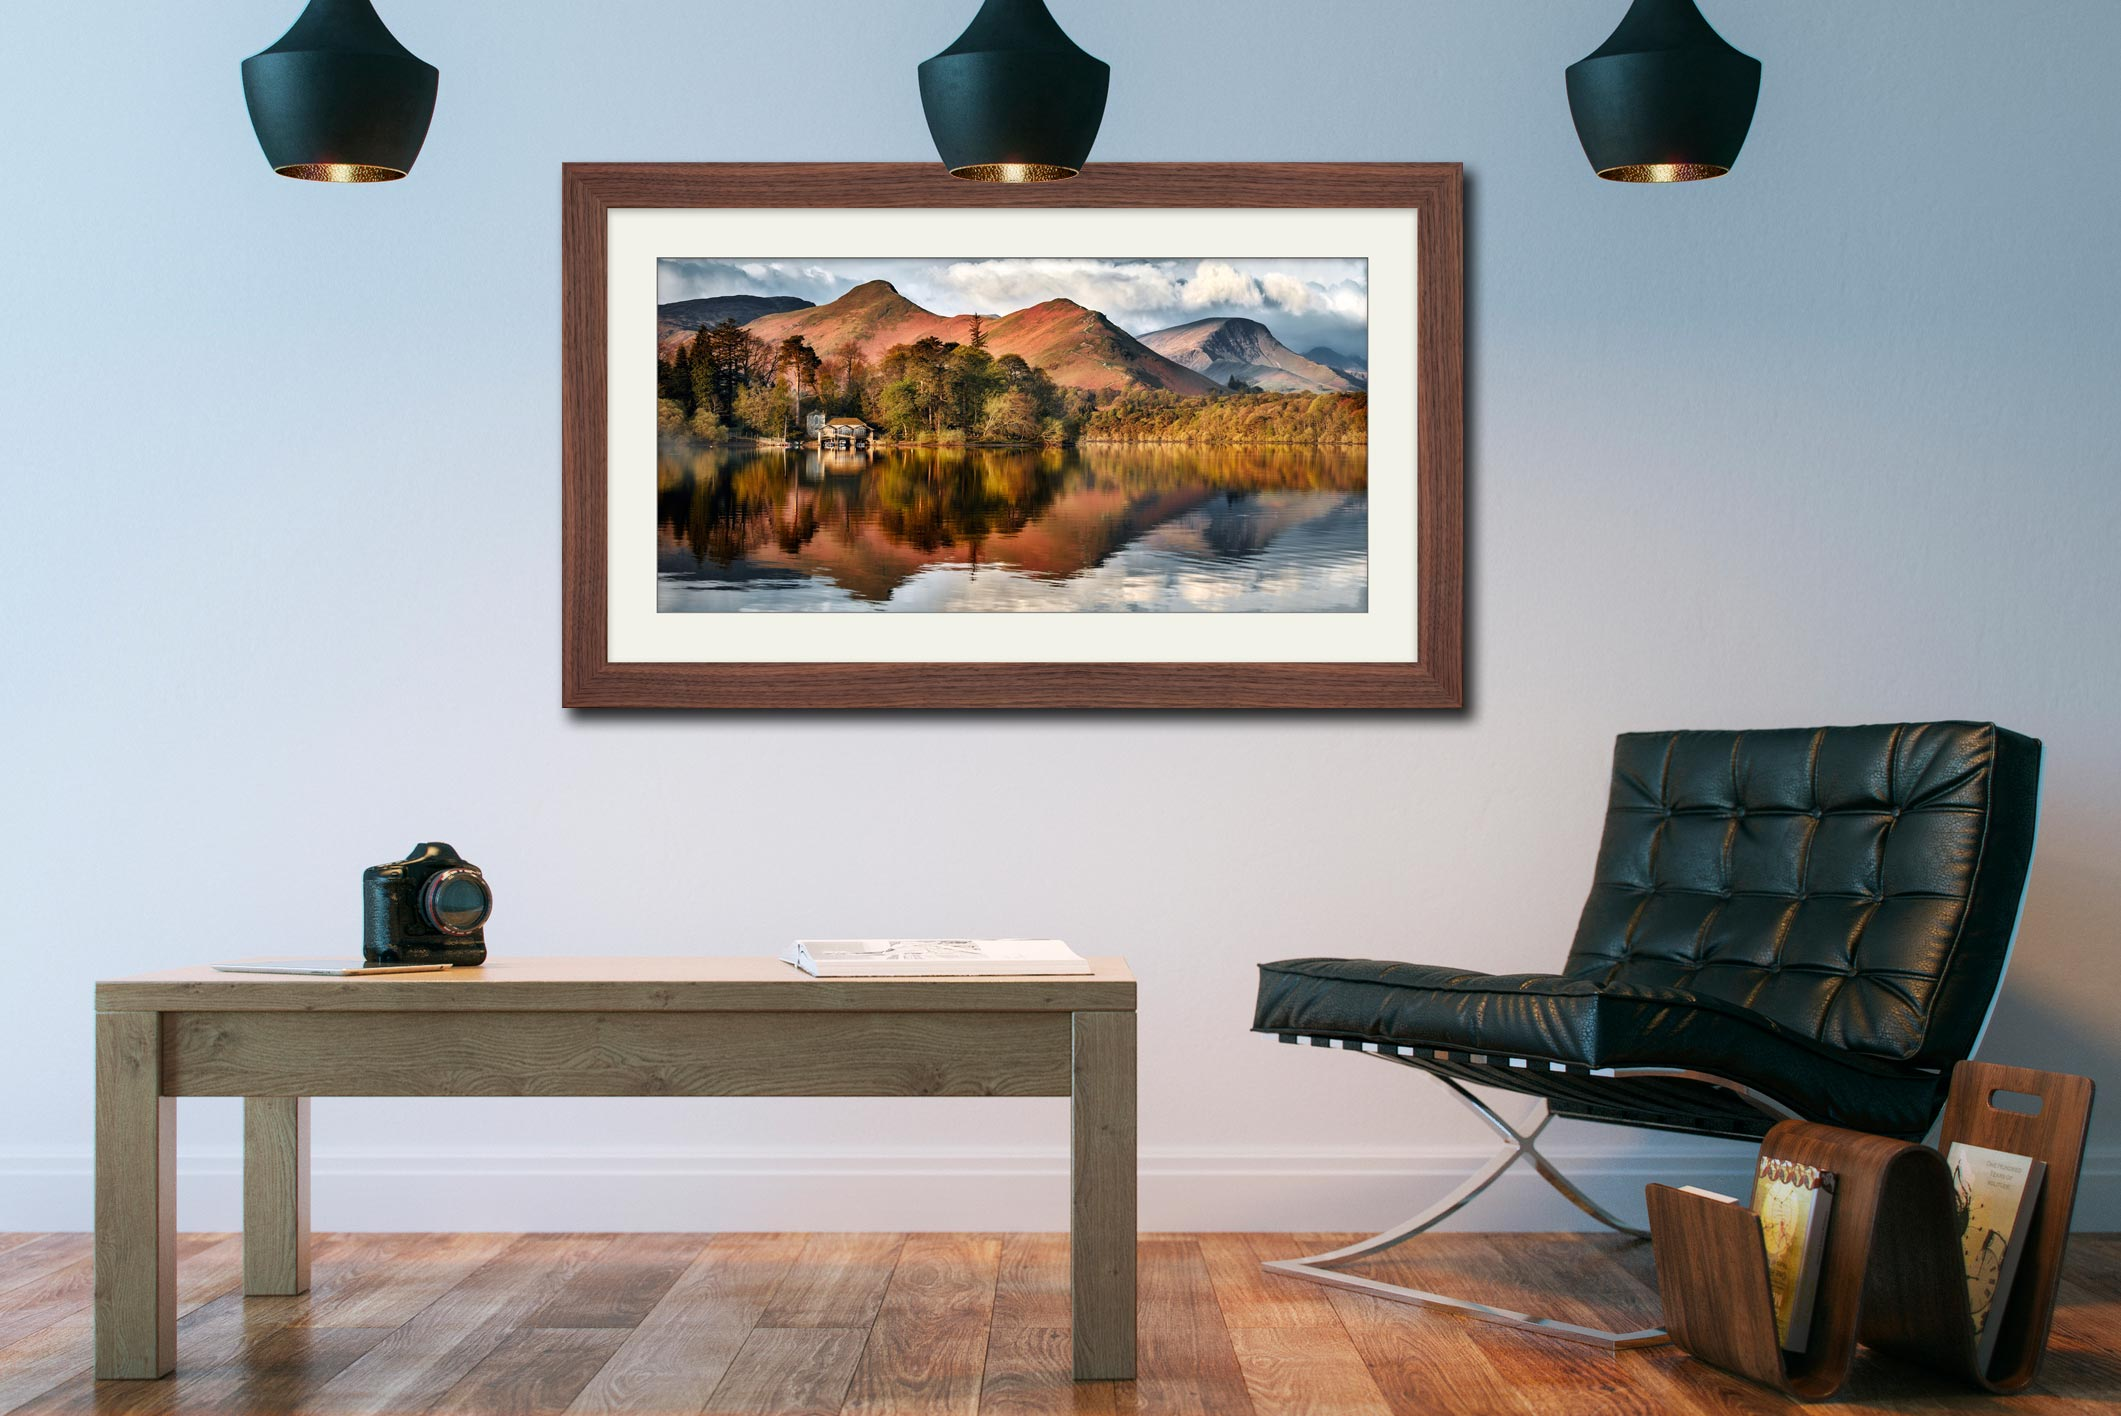 Derwent Boathouse and Cat Bells - Framed Print with Mount on Wall